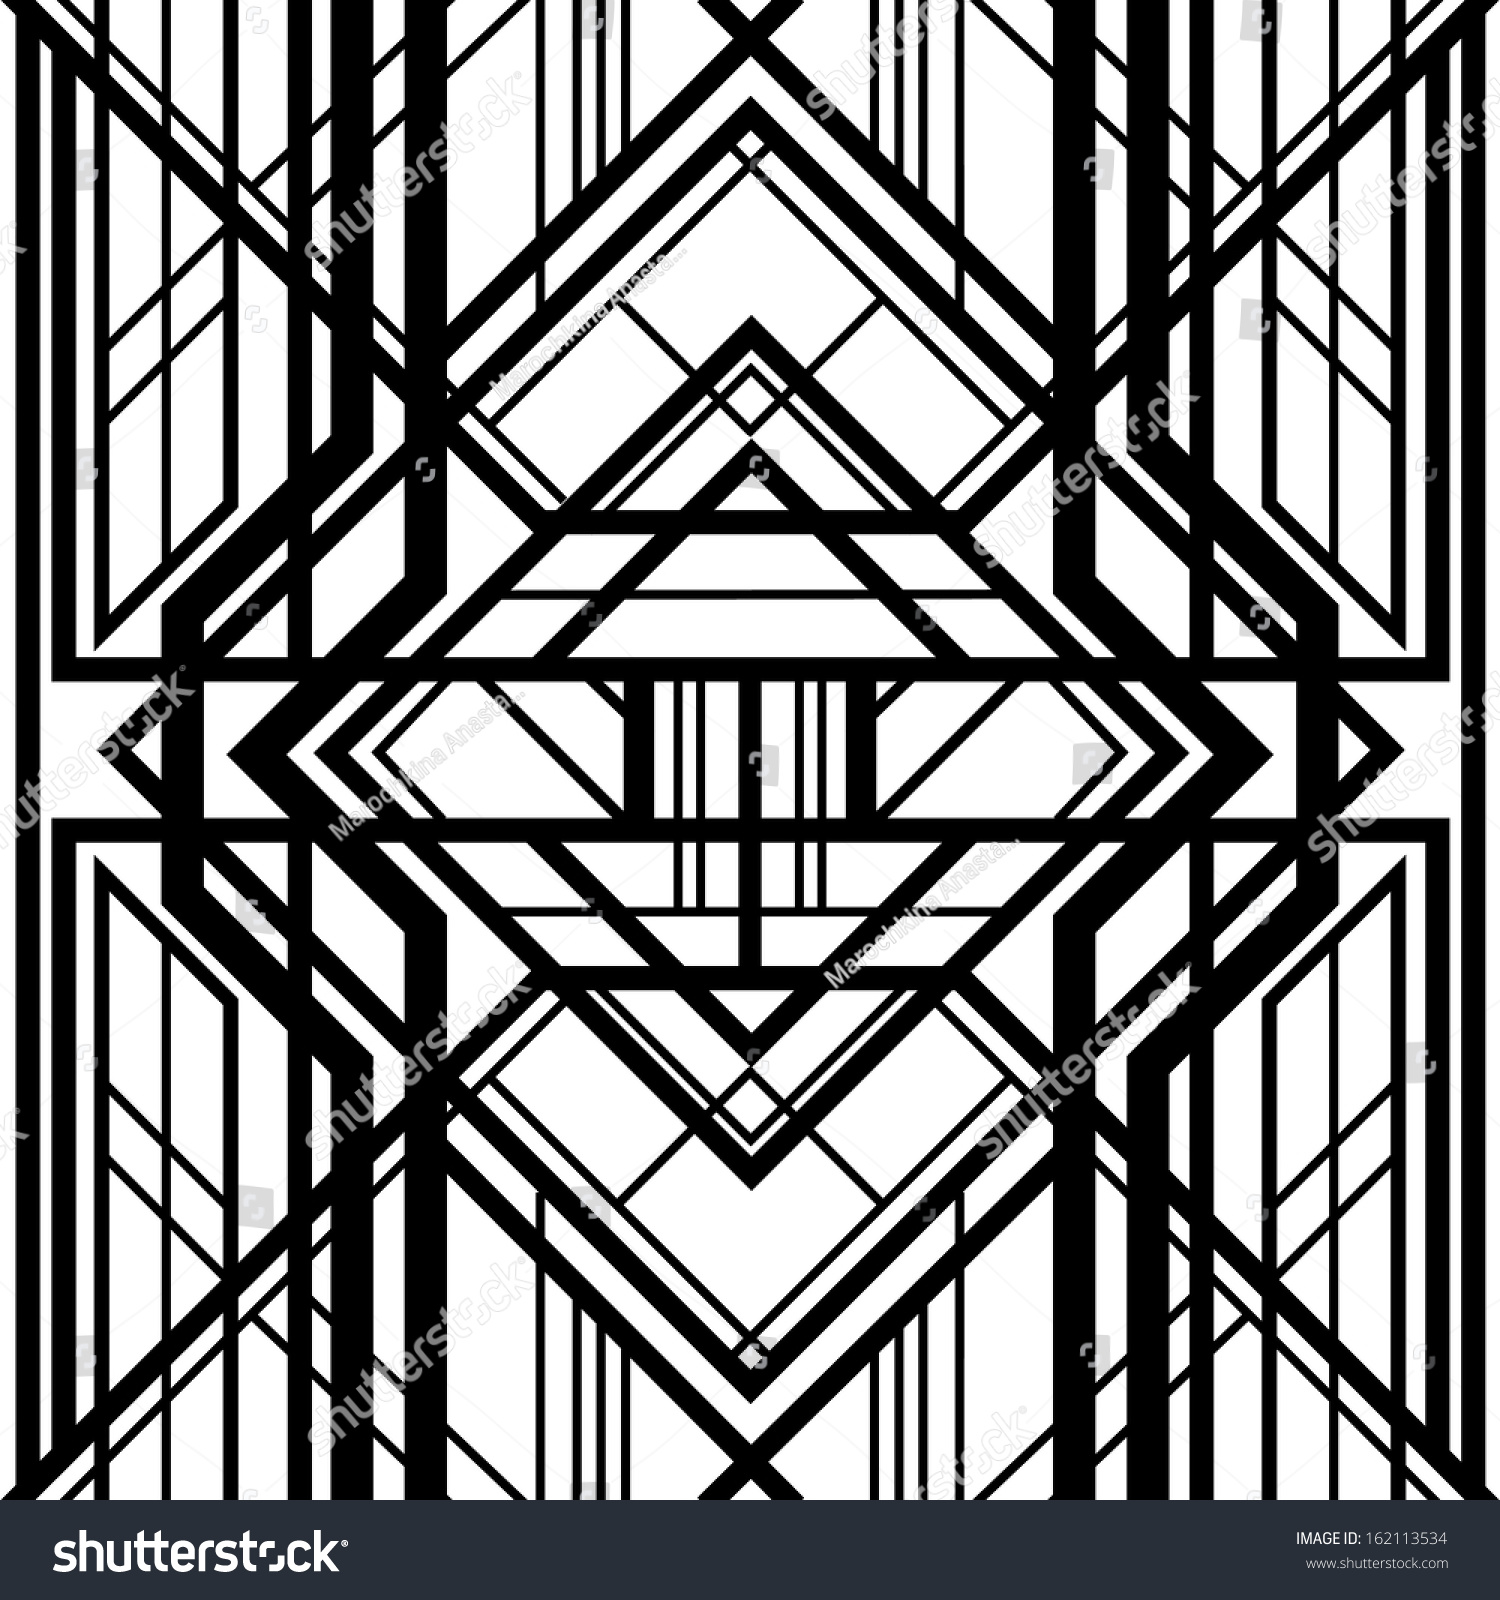 Seamless Pattern Abstract Geometric Background Black Stock Vector 162113534 Shutterstock